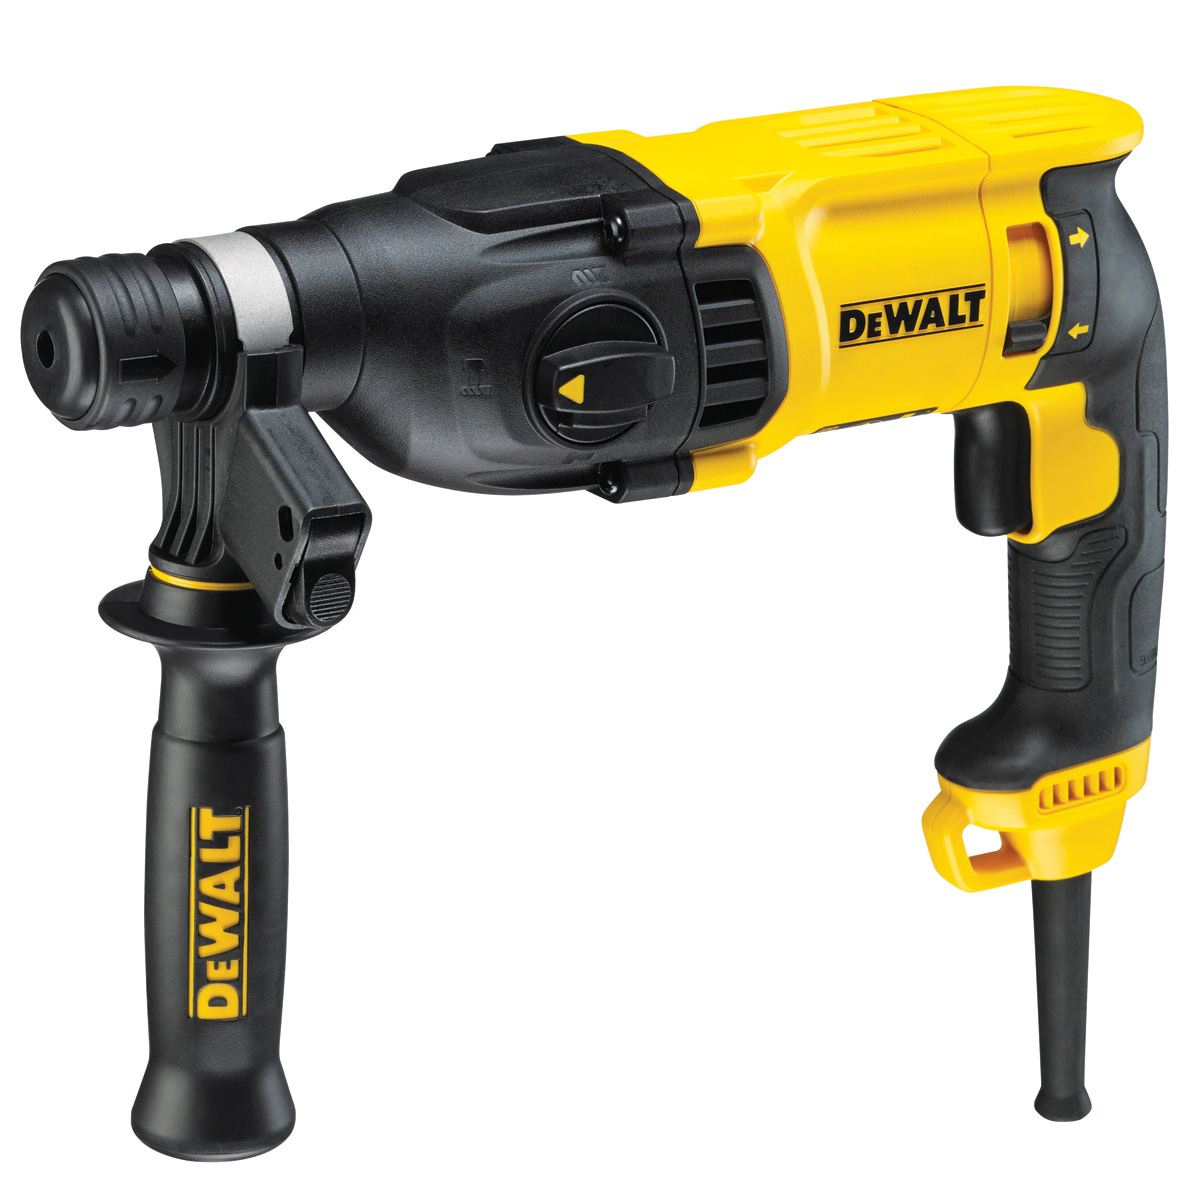 Dewalt SDS-Plus 800W Rotary Hammer in a TSTAK case (D25133K)